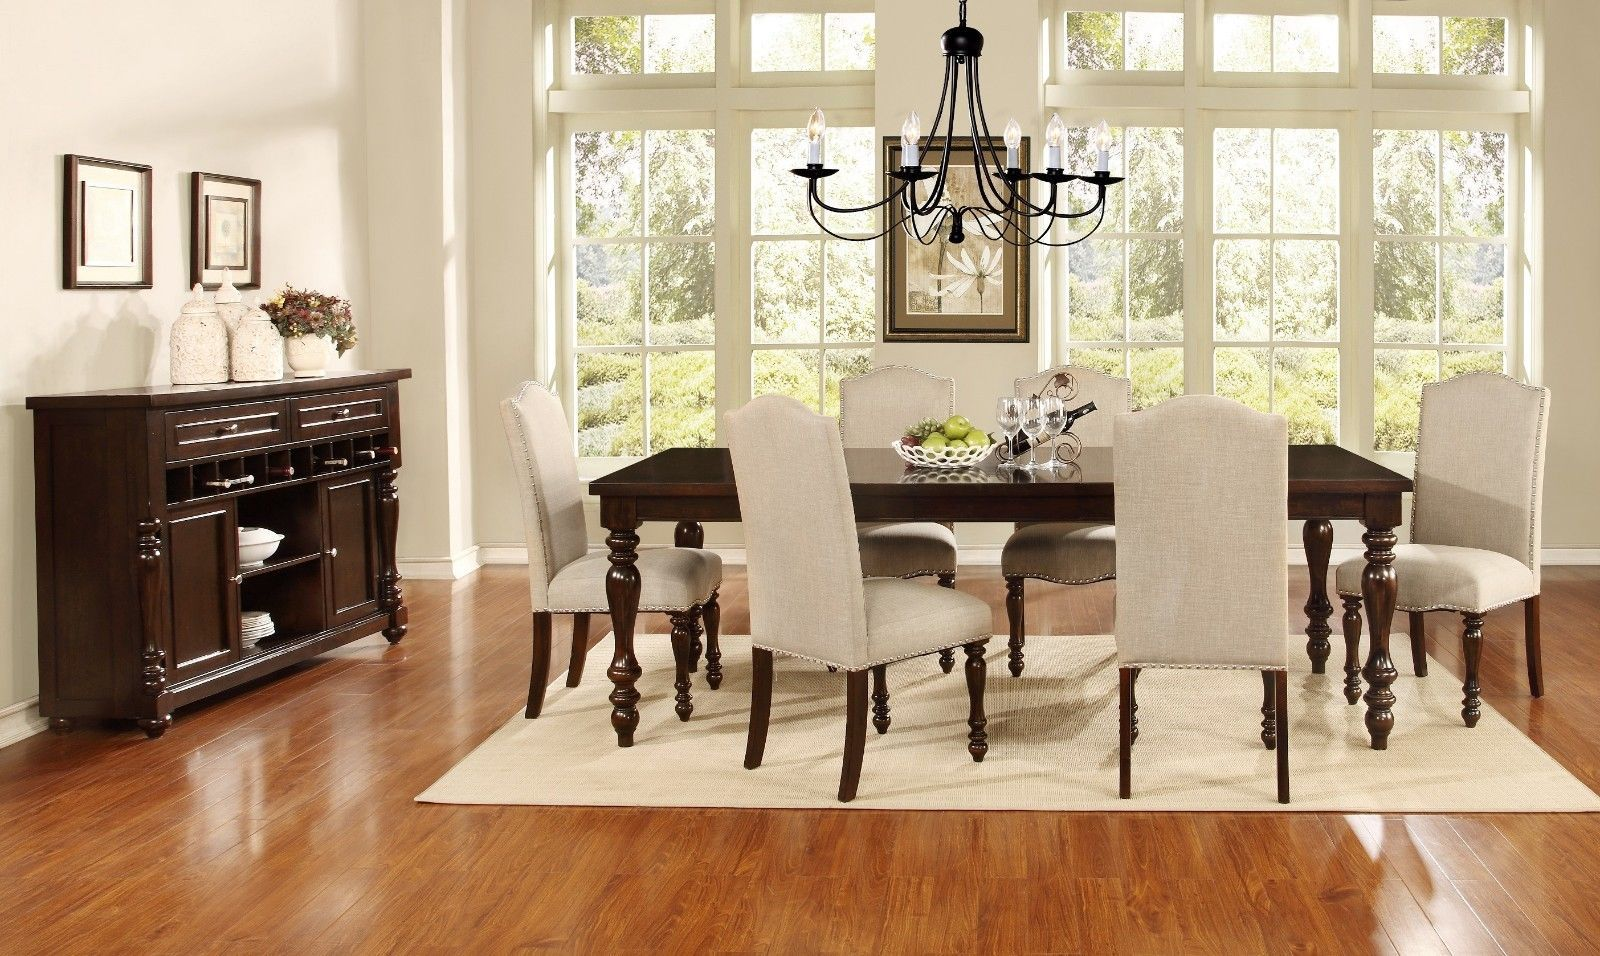 Mcferran RD1888  OAK REG  Dining Room Set 5pc. BLACK Counter Heigh Traditional